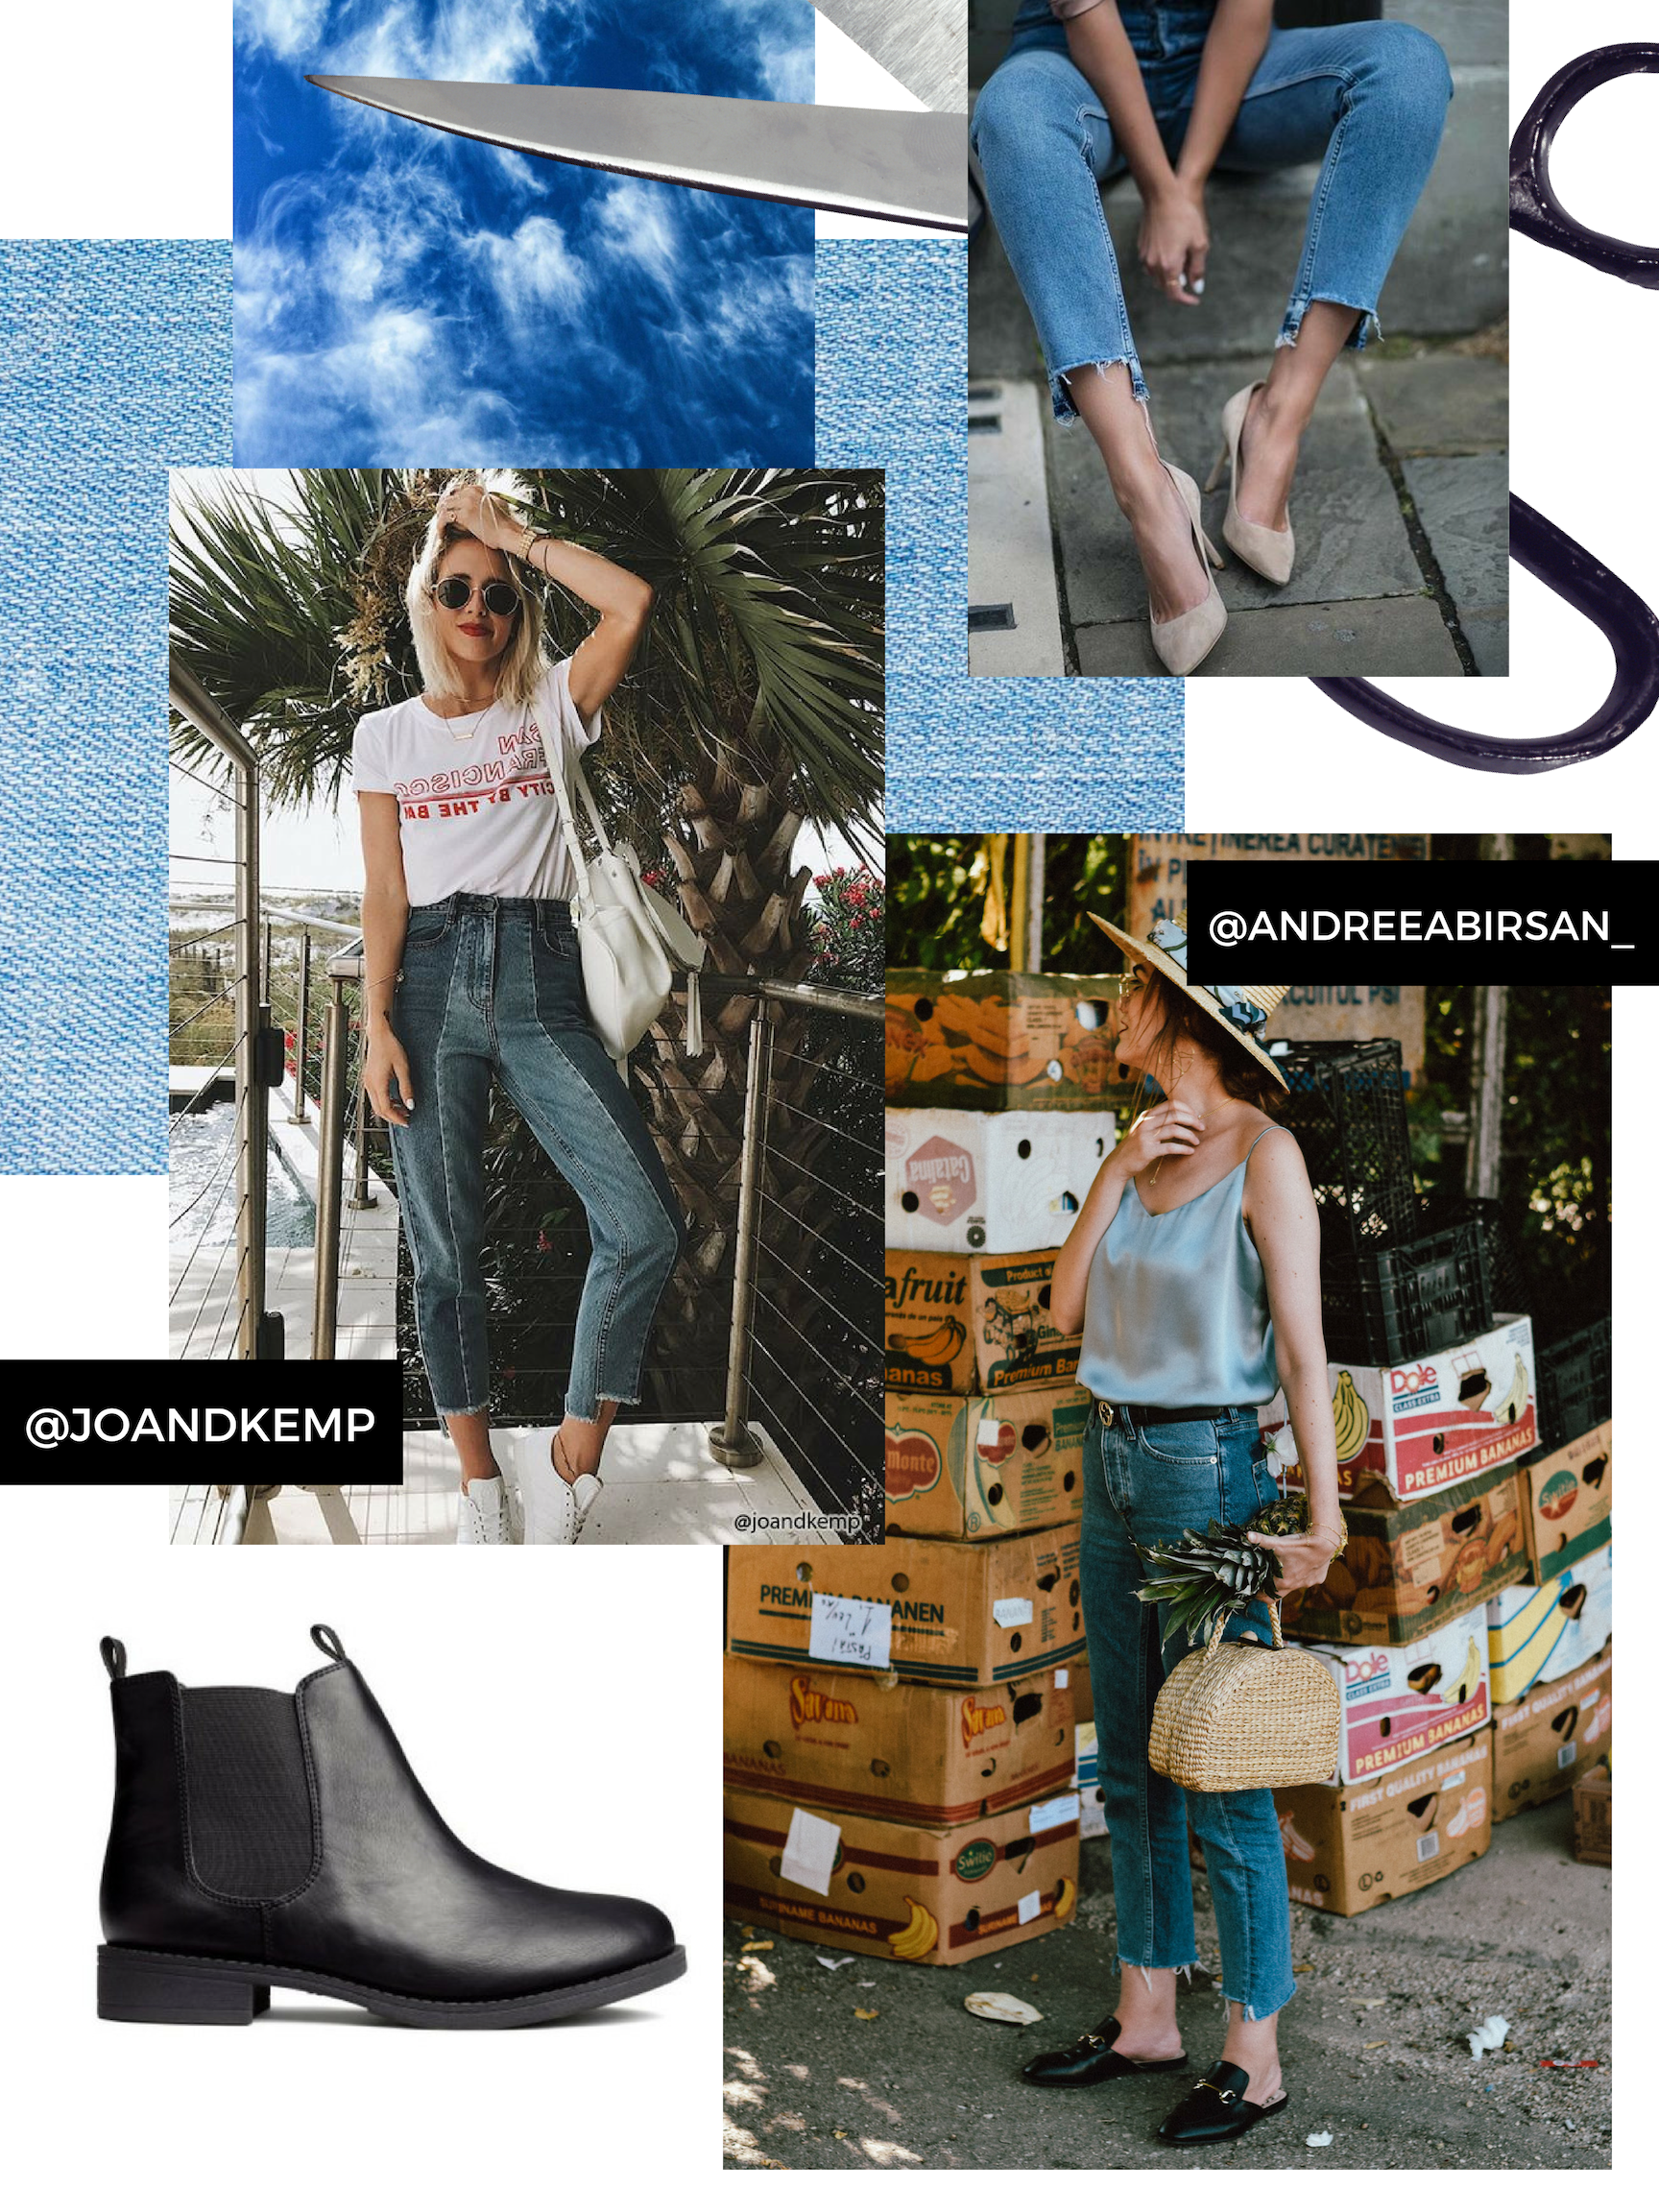 Mood board I created featuring some rockin' step hem jeans, boots I would love to wear with mine and other pretty things.